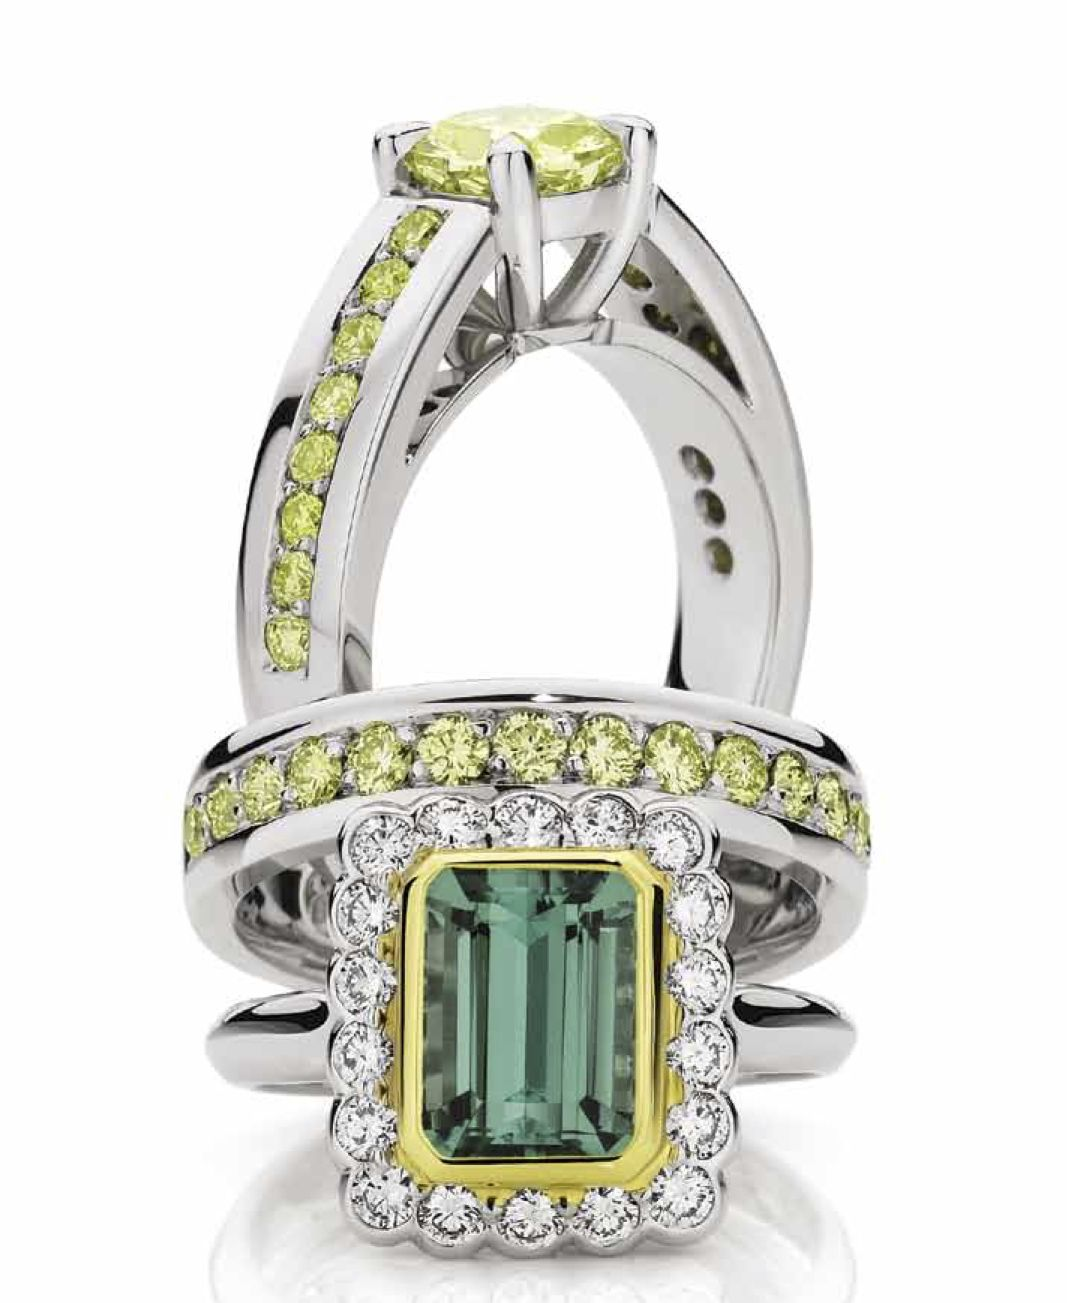 Rings for Rio! Our green Tourmaline and yellow diamond rings would look great on every podium :)